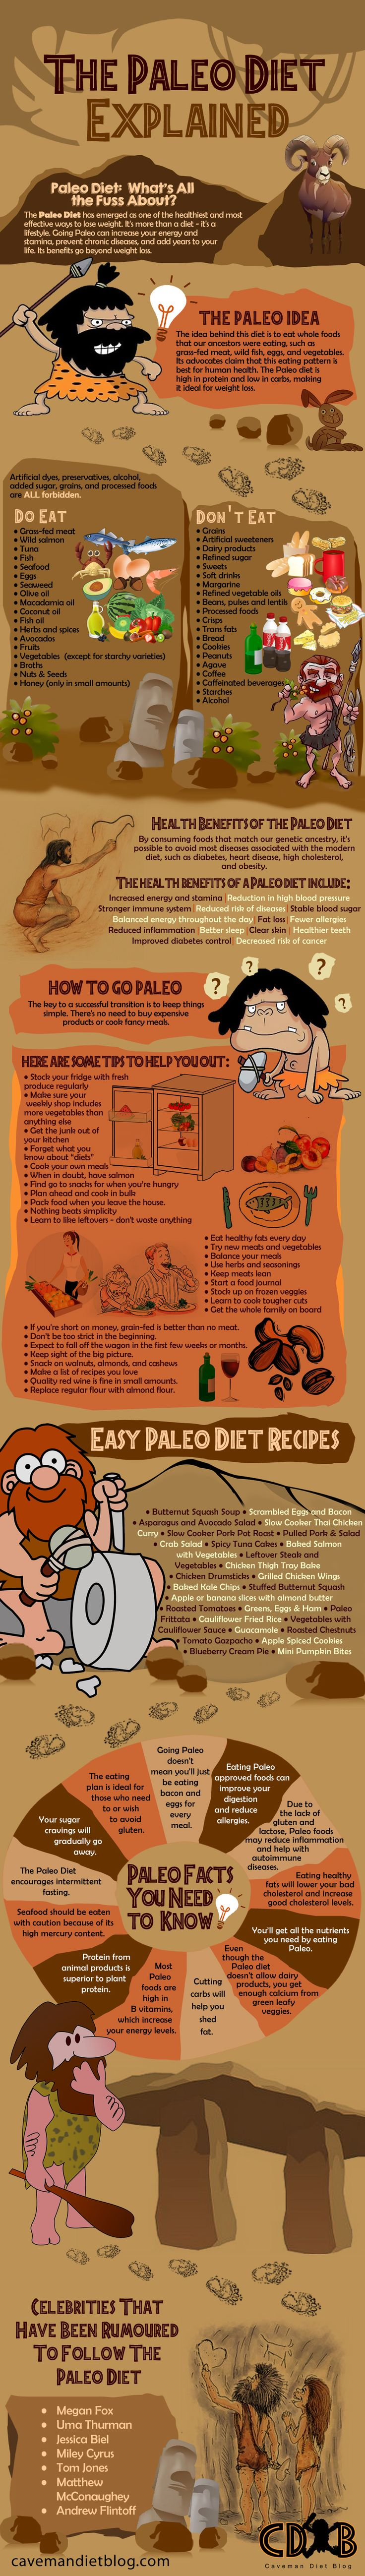 The Paleo Diet Explained - Fantastic infographic full of information about the Paleo diet